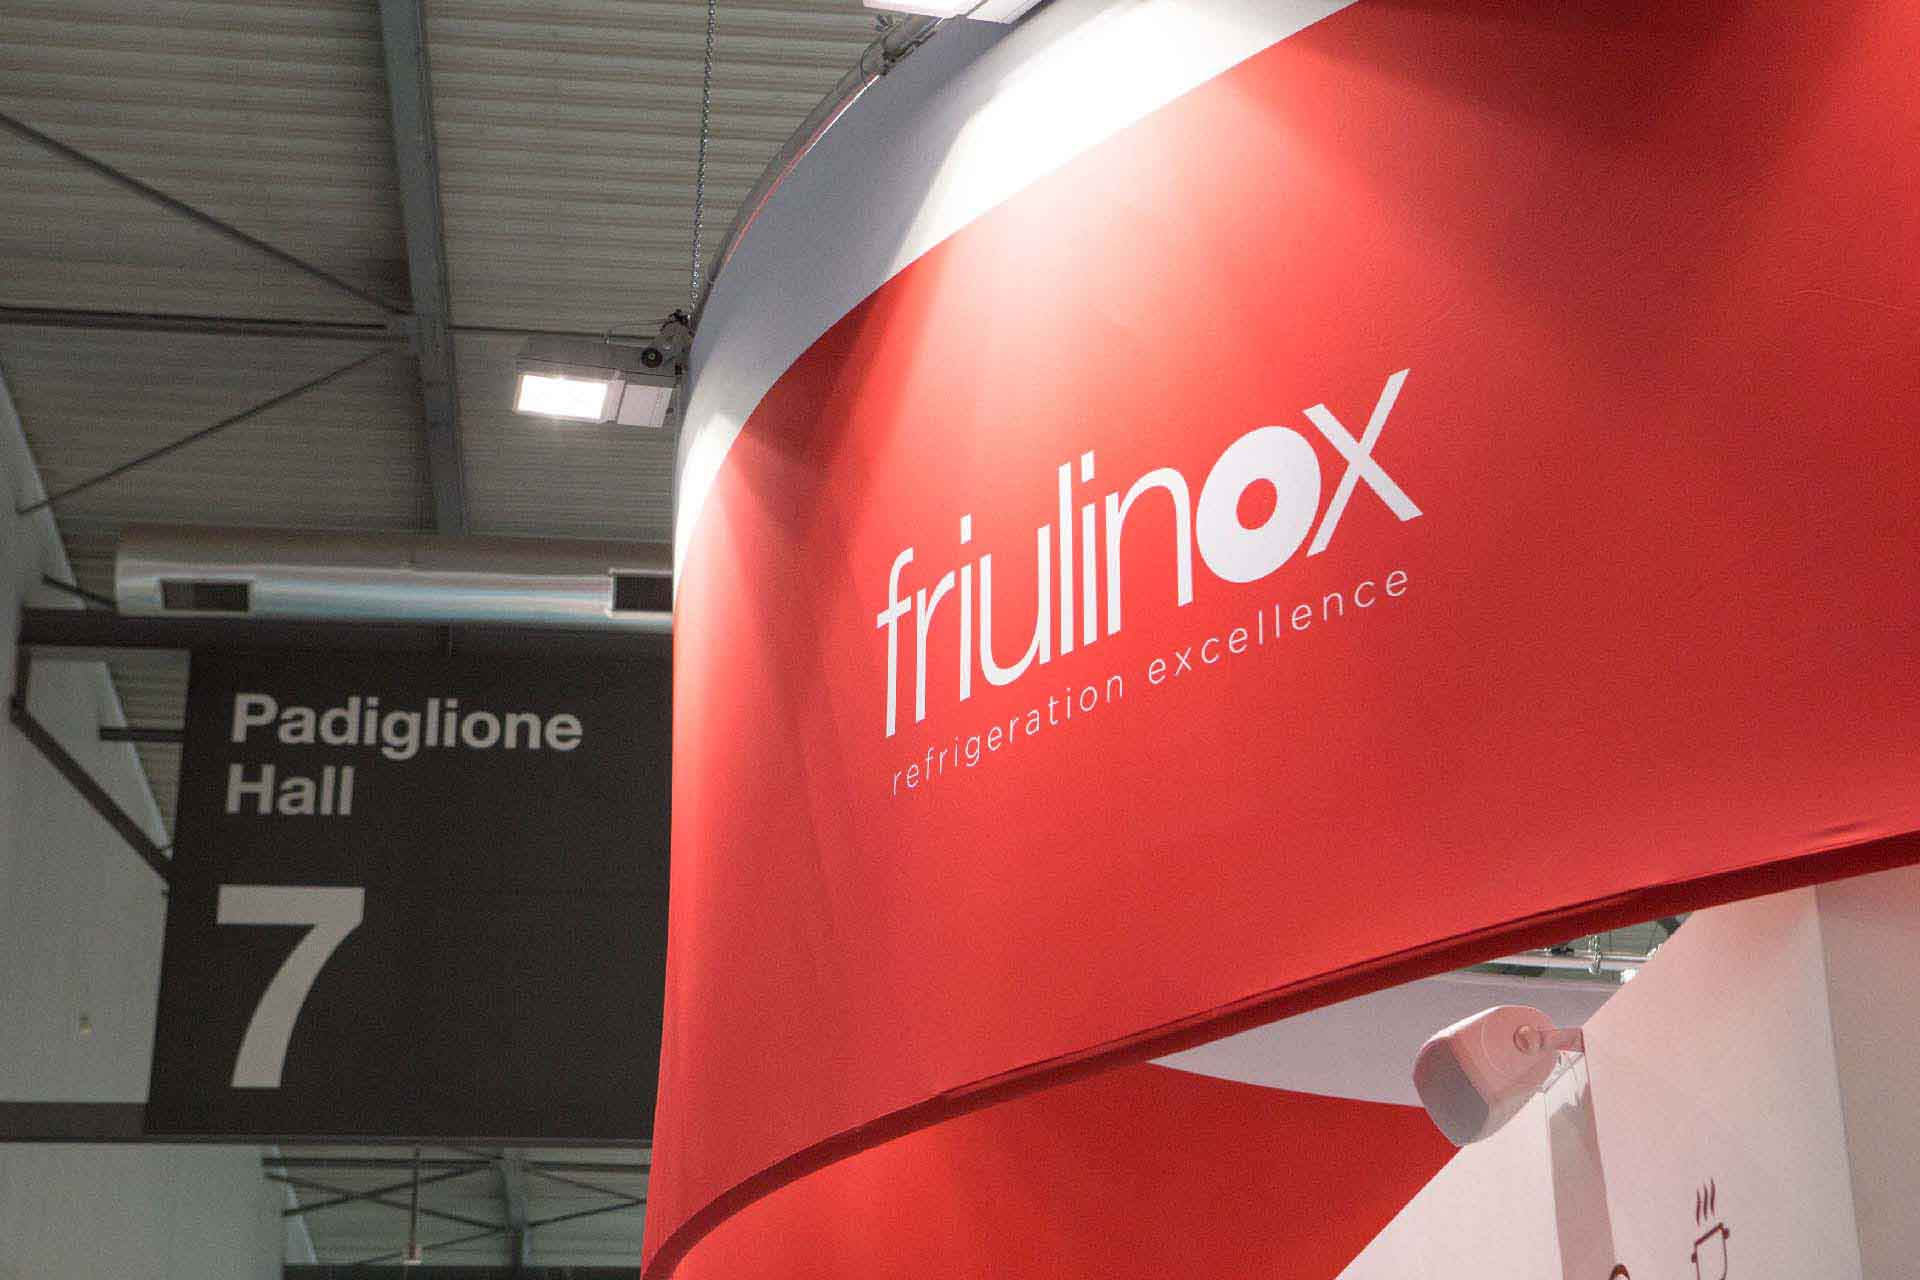 Friulinox_Host_News_12